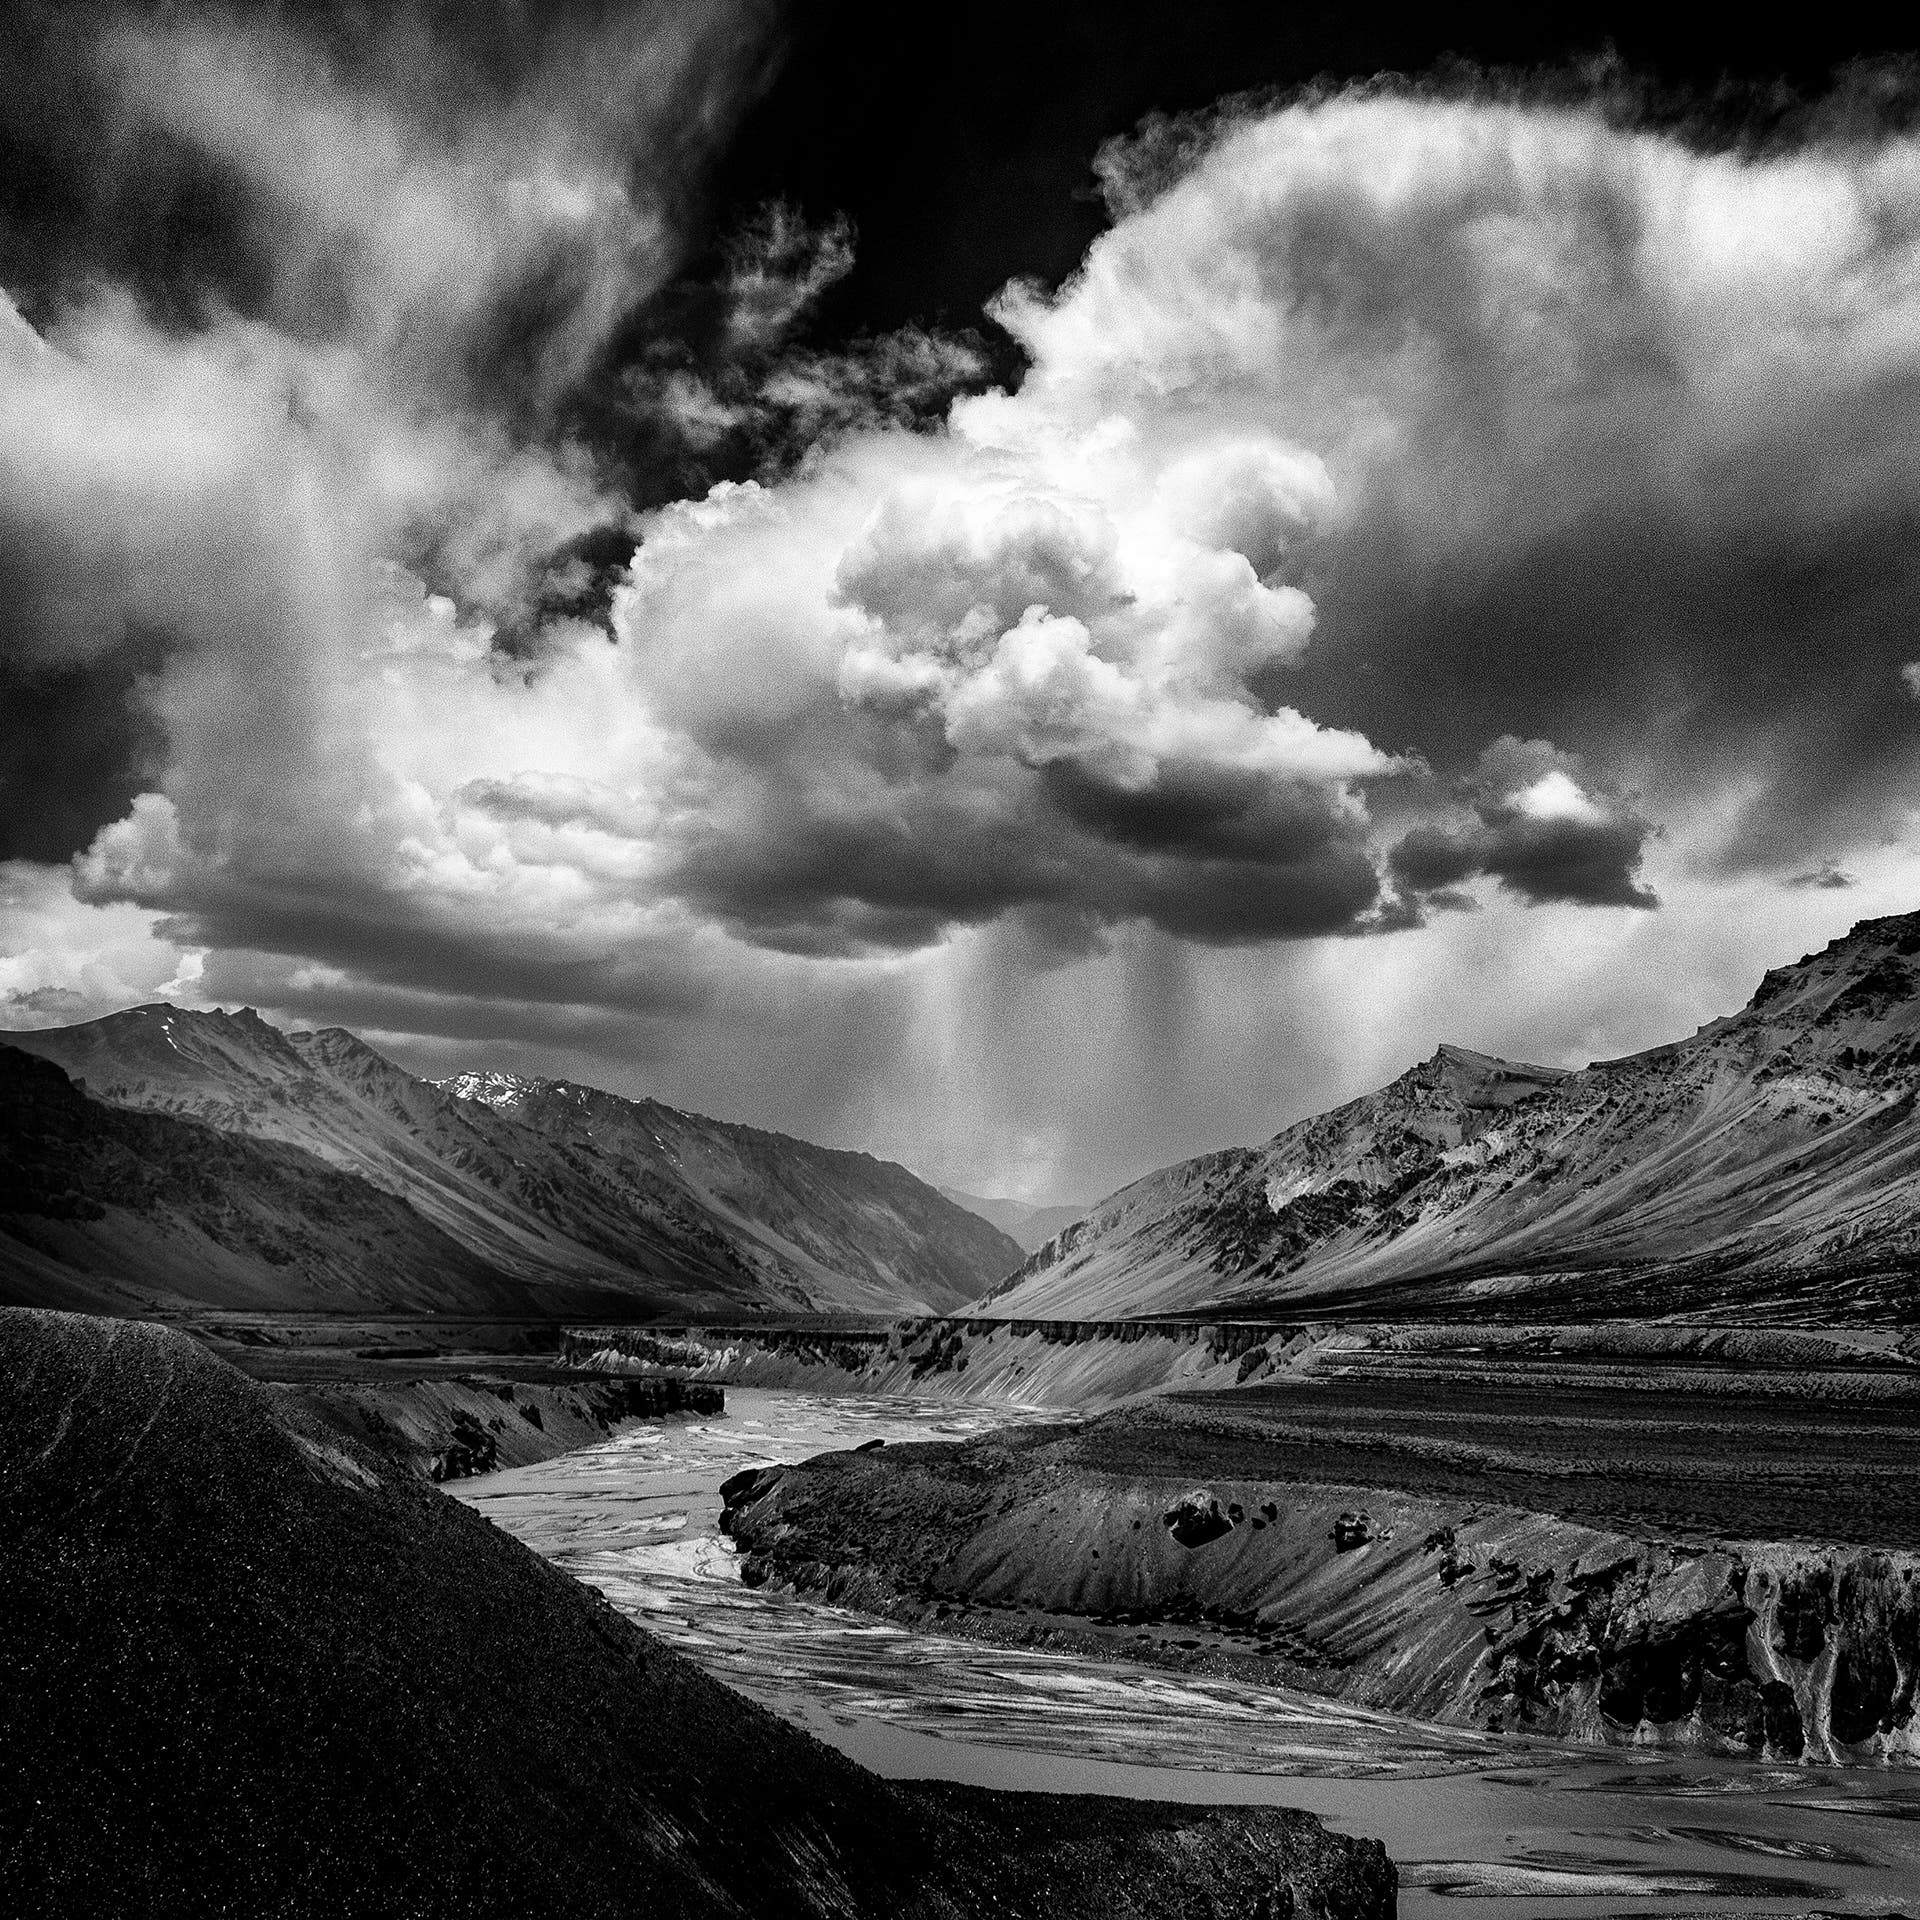 jayanta landscape roy fine series himalayan odyssey photographer professional india galleries behance awareness change worldphoto climate christian nature awards sony